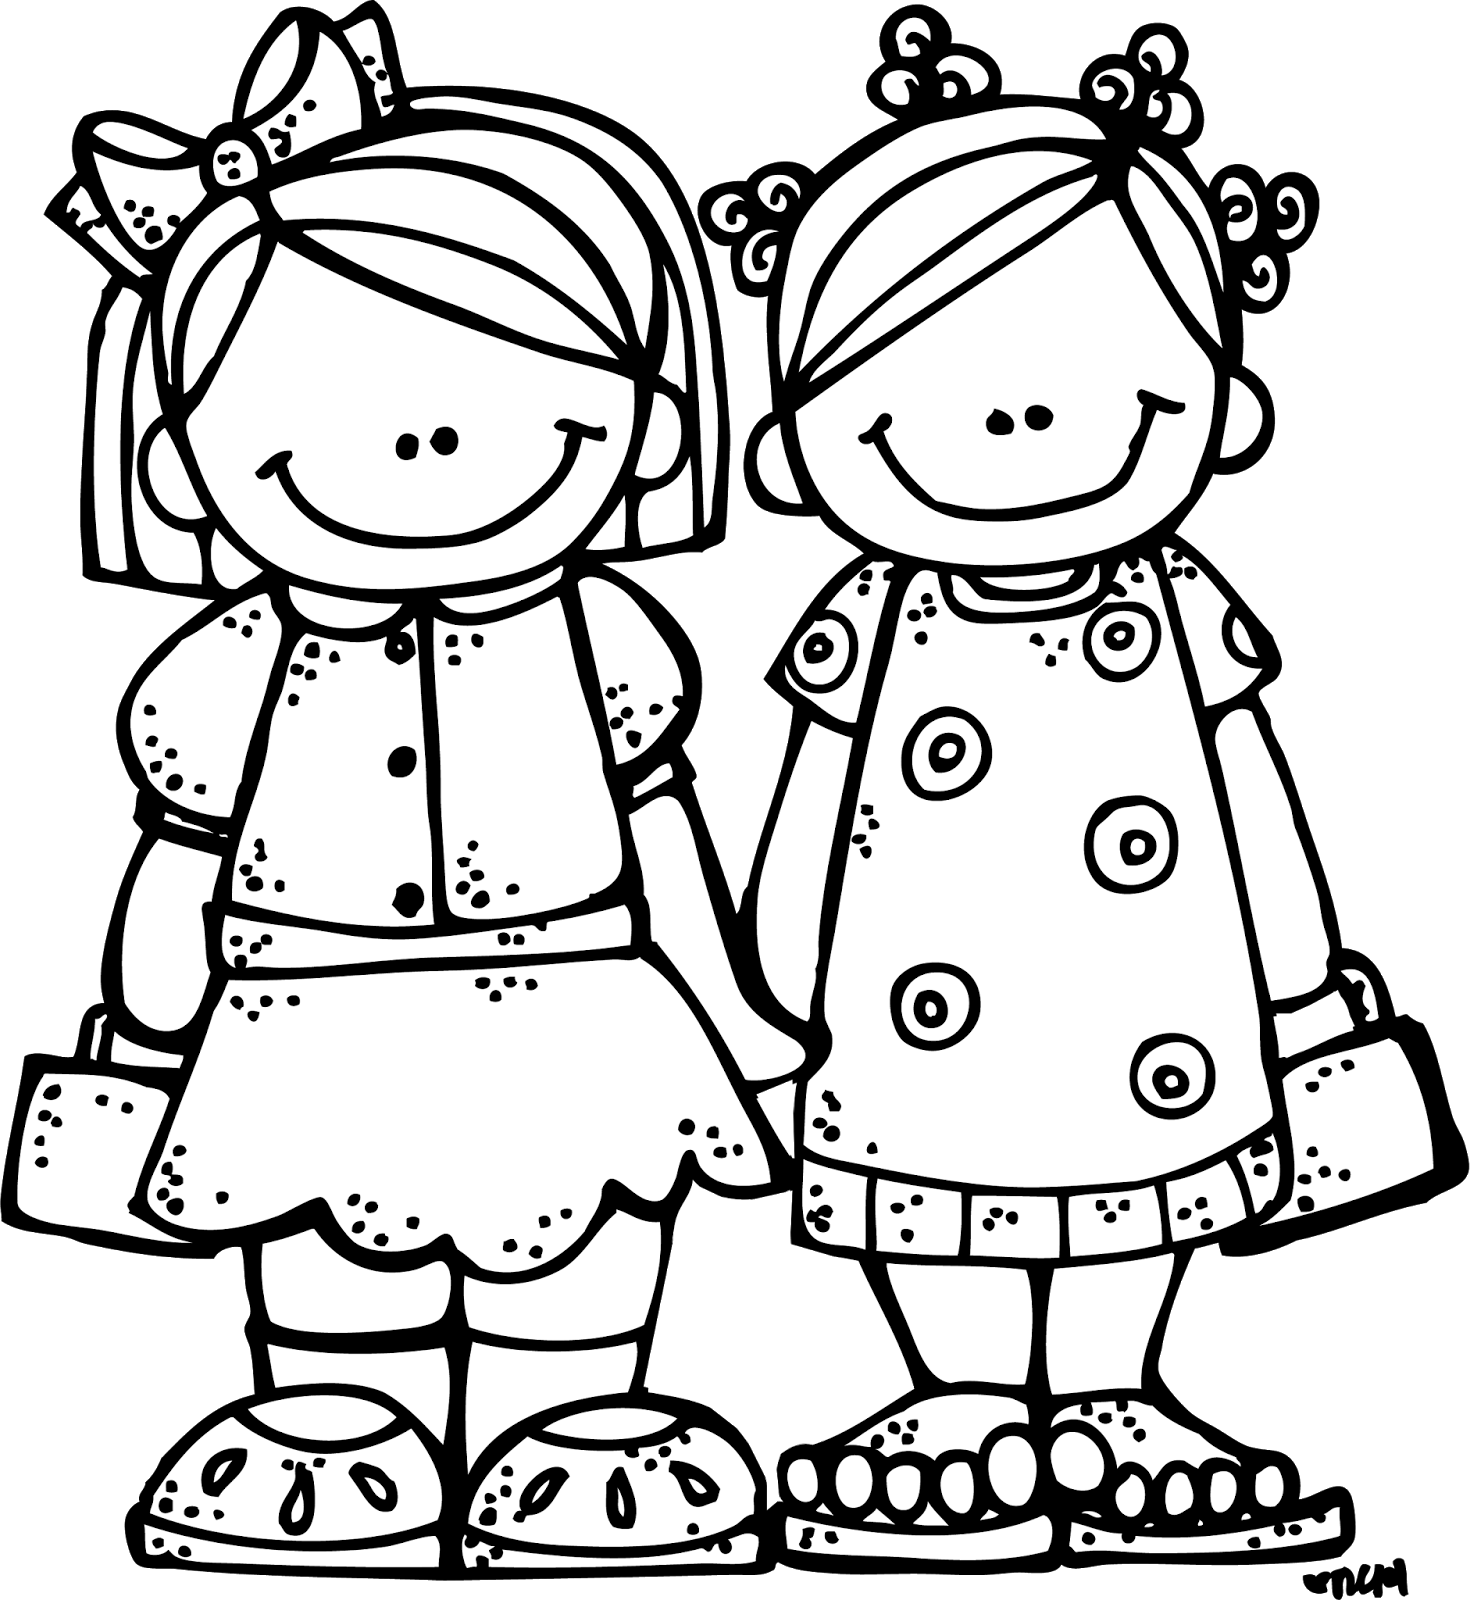 svg royalty free download Siblings png transparent sisters. Brother clipart black and white